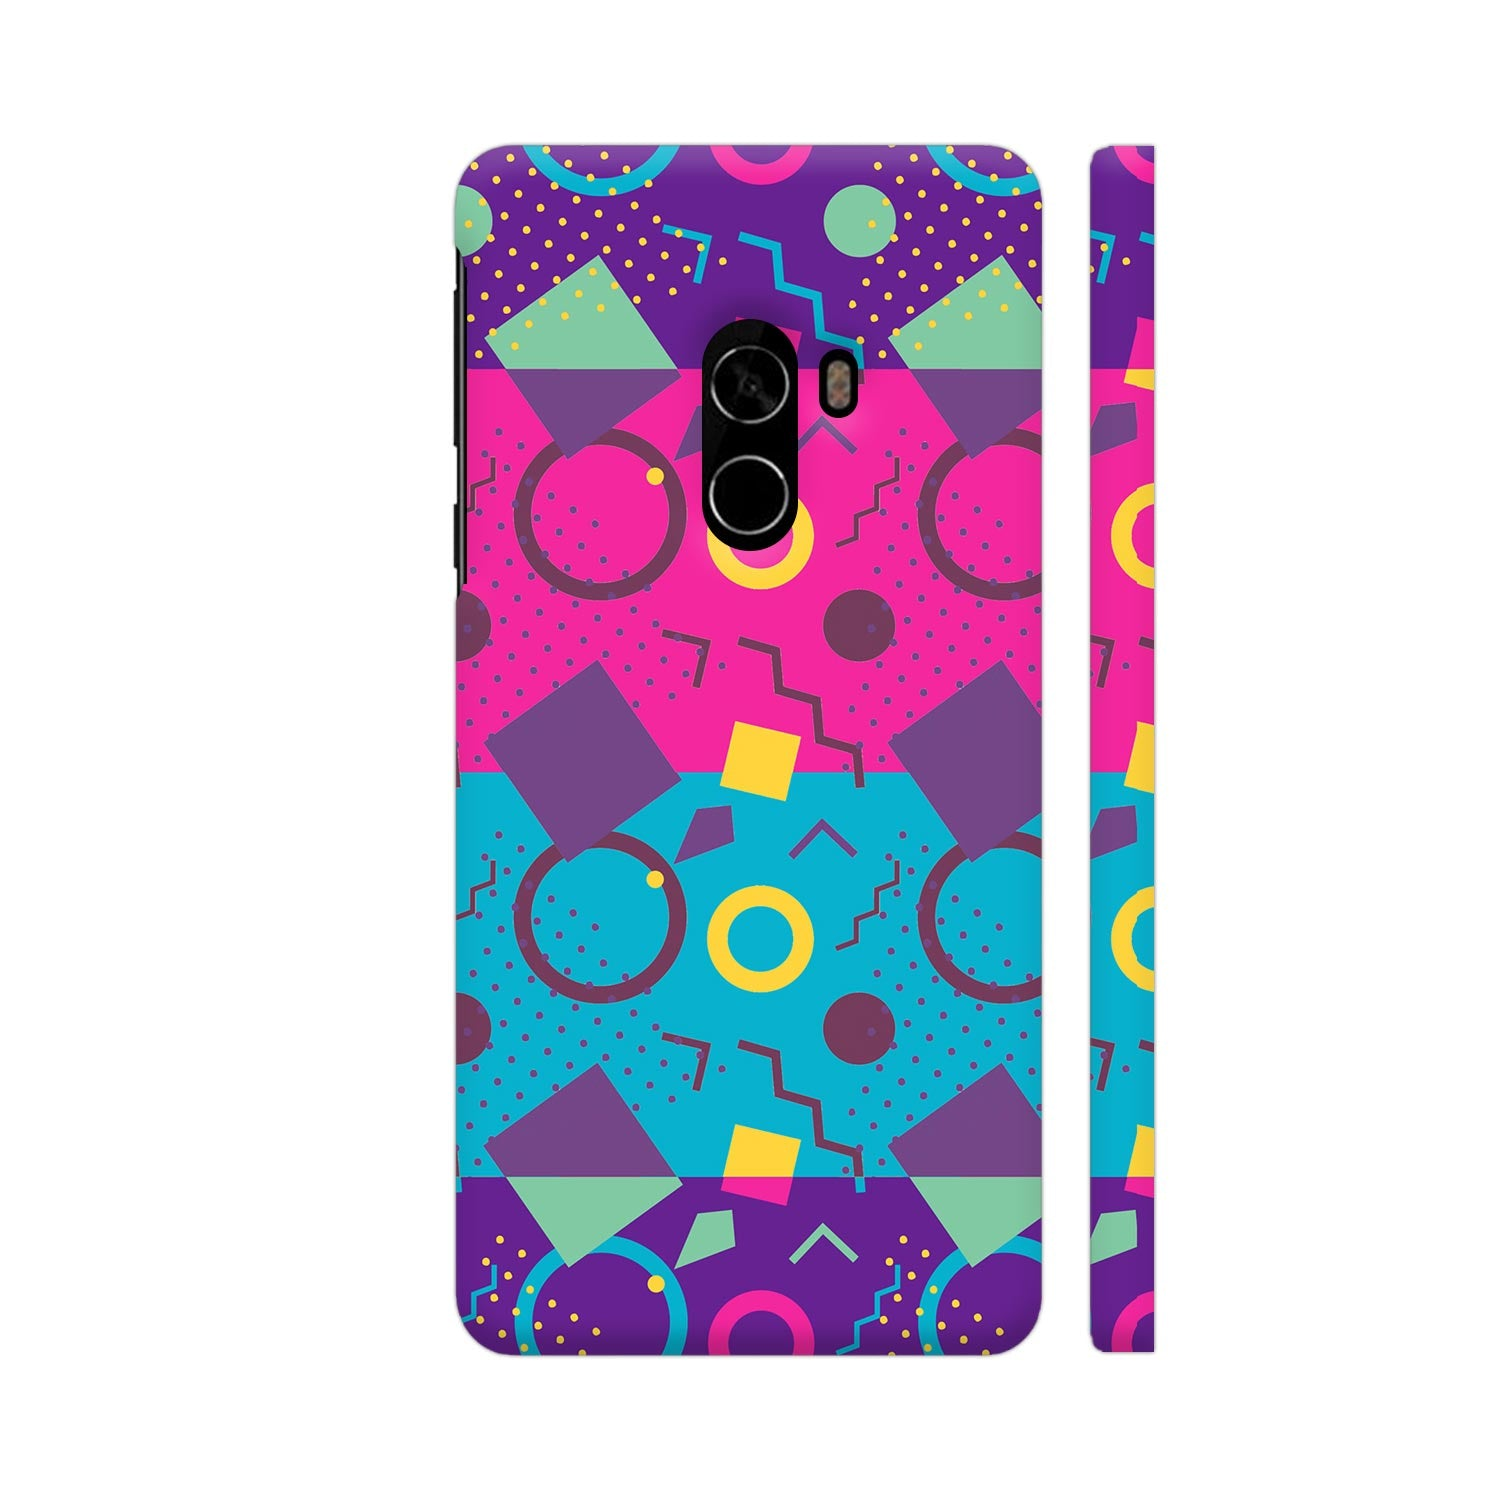 Neon Confetti Slim Case And Cover For Mi Mix 2